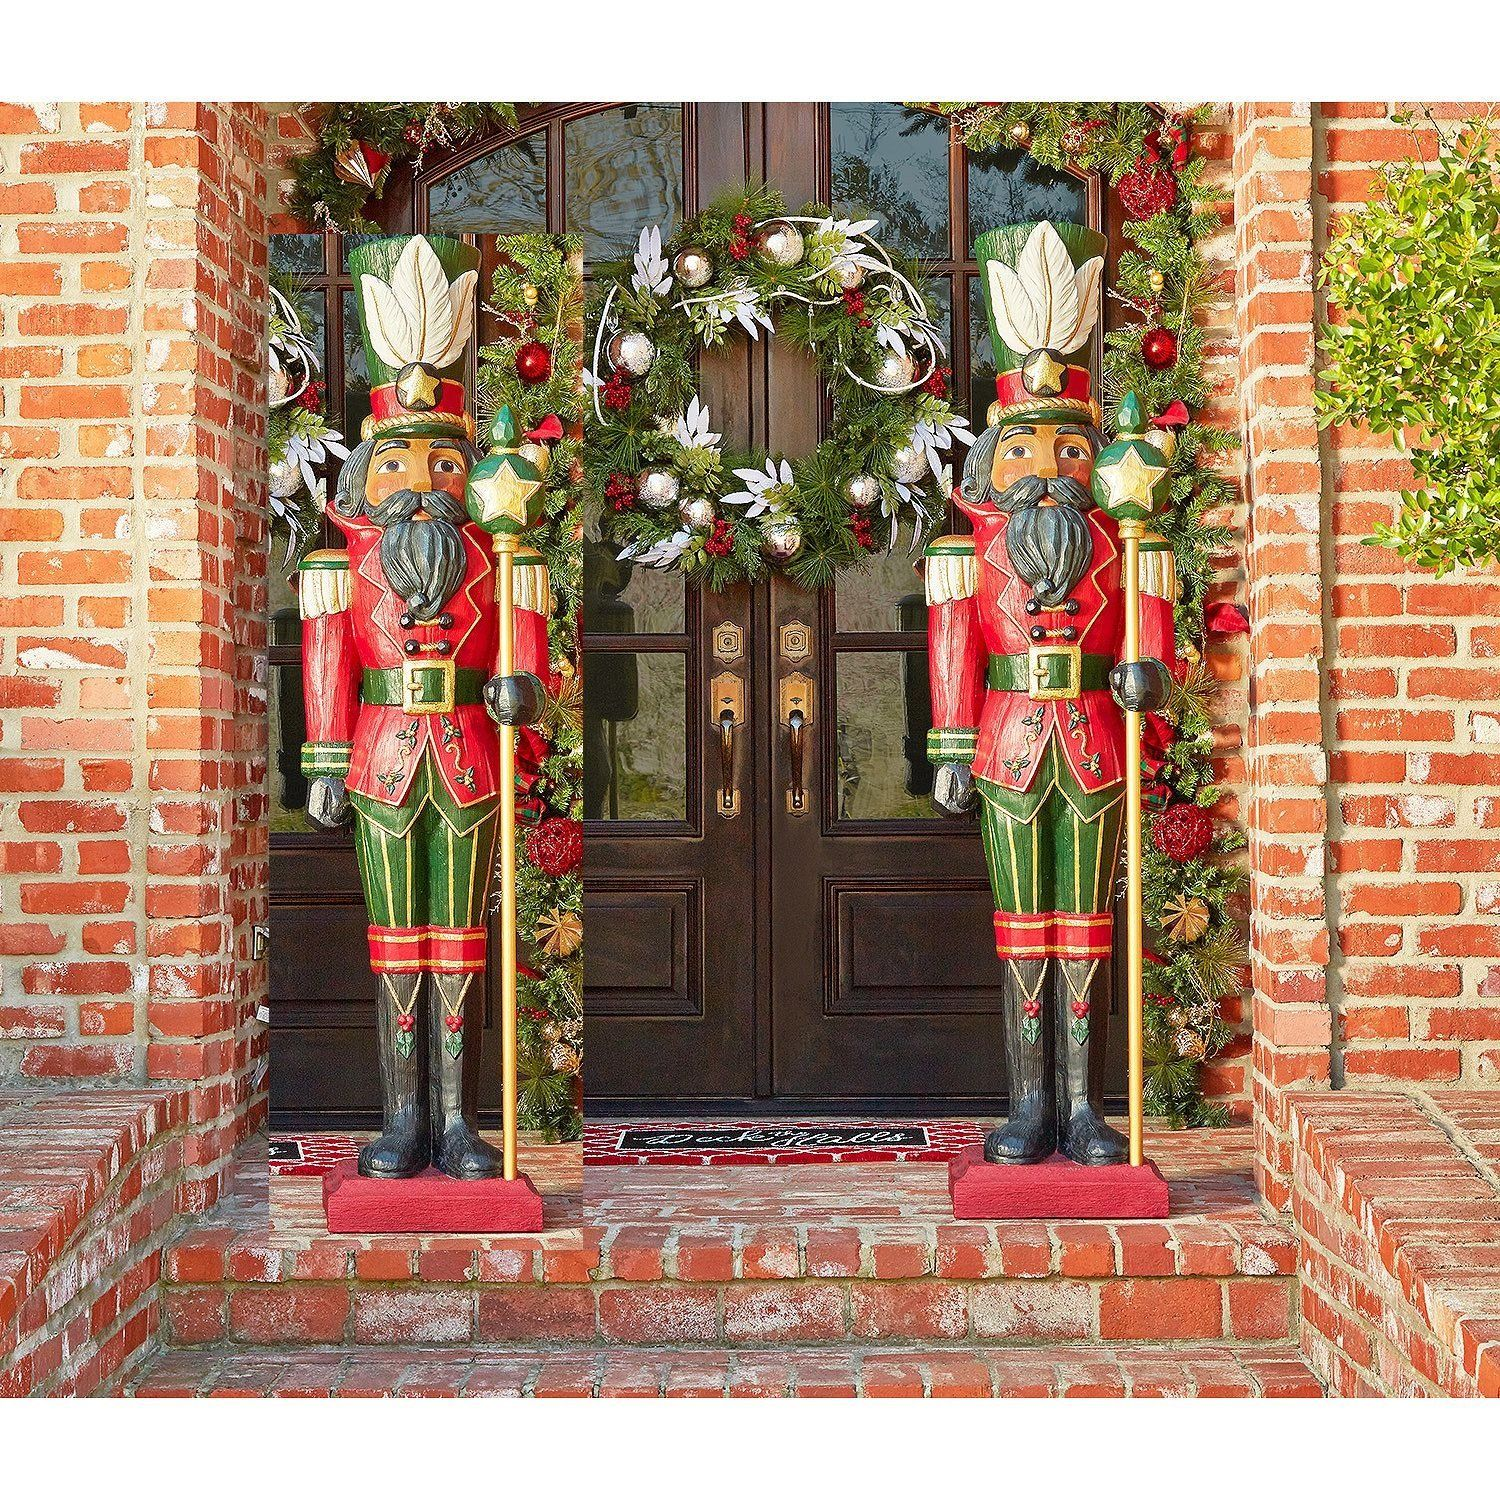 Large Outdoor Nutcracker Decoration Life Size Nutcracker Decorations Nutcracker Christmas Nutcracker Christmas Decorations